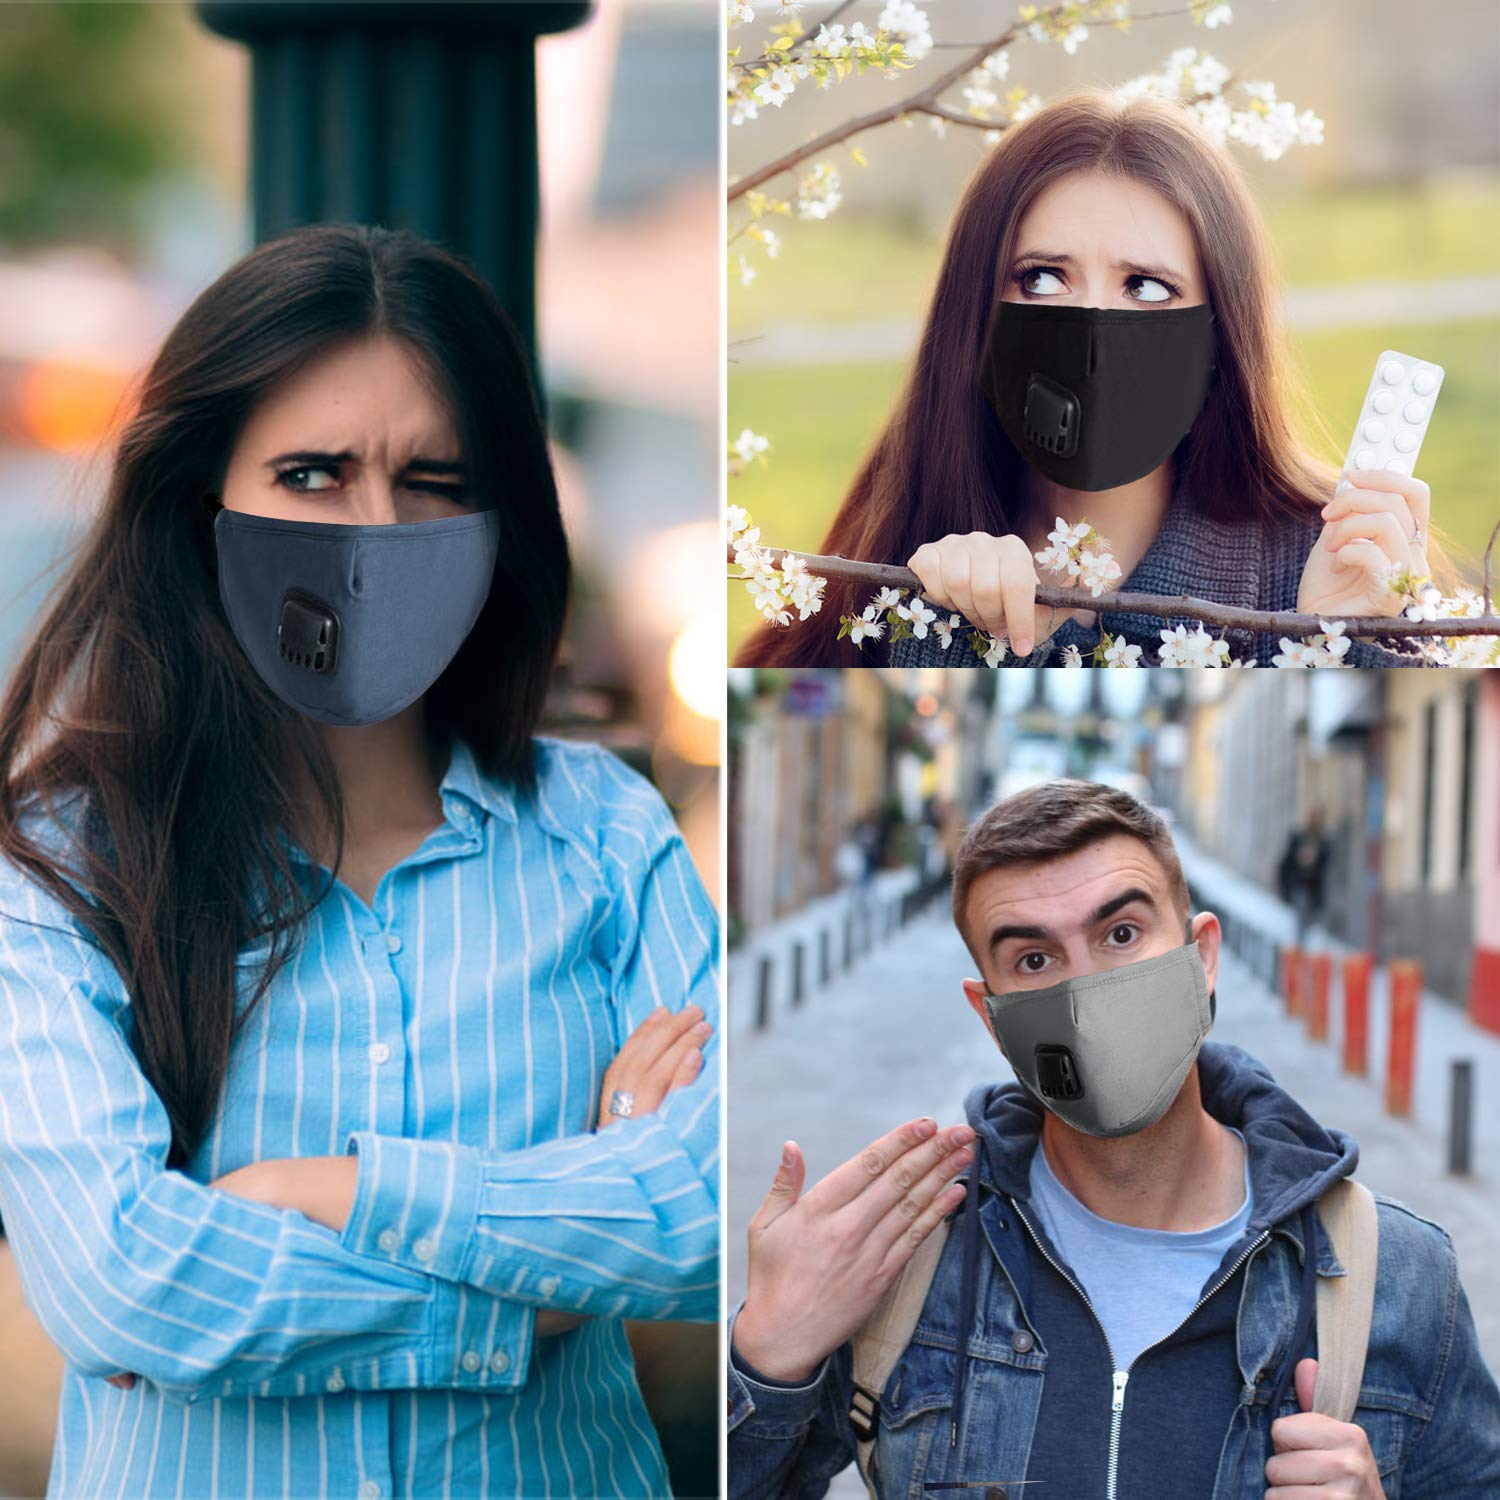 Mouth Masks,Kapmore 3PCS Anti Dust Pollution Mask Breathable Washable Fashion Cotton PM2.5 Dust Mask Mouth Mask with Adjustable Straps for Adult